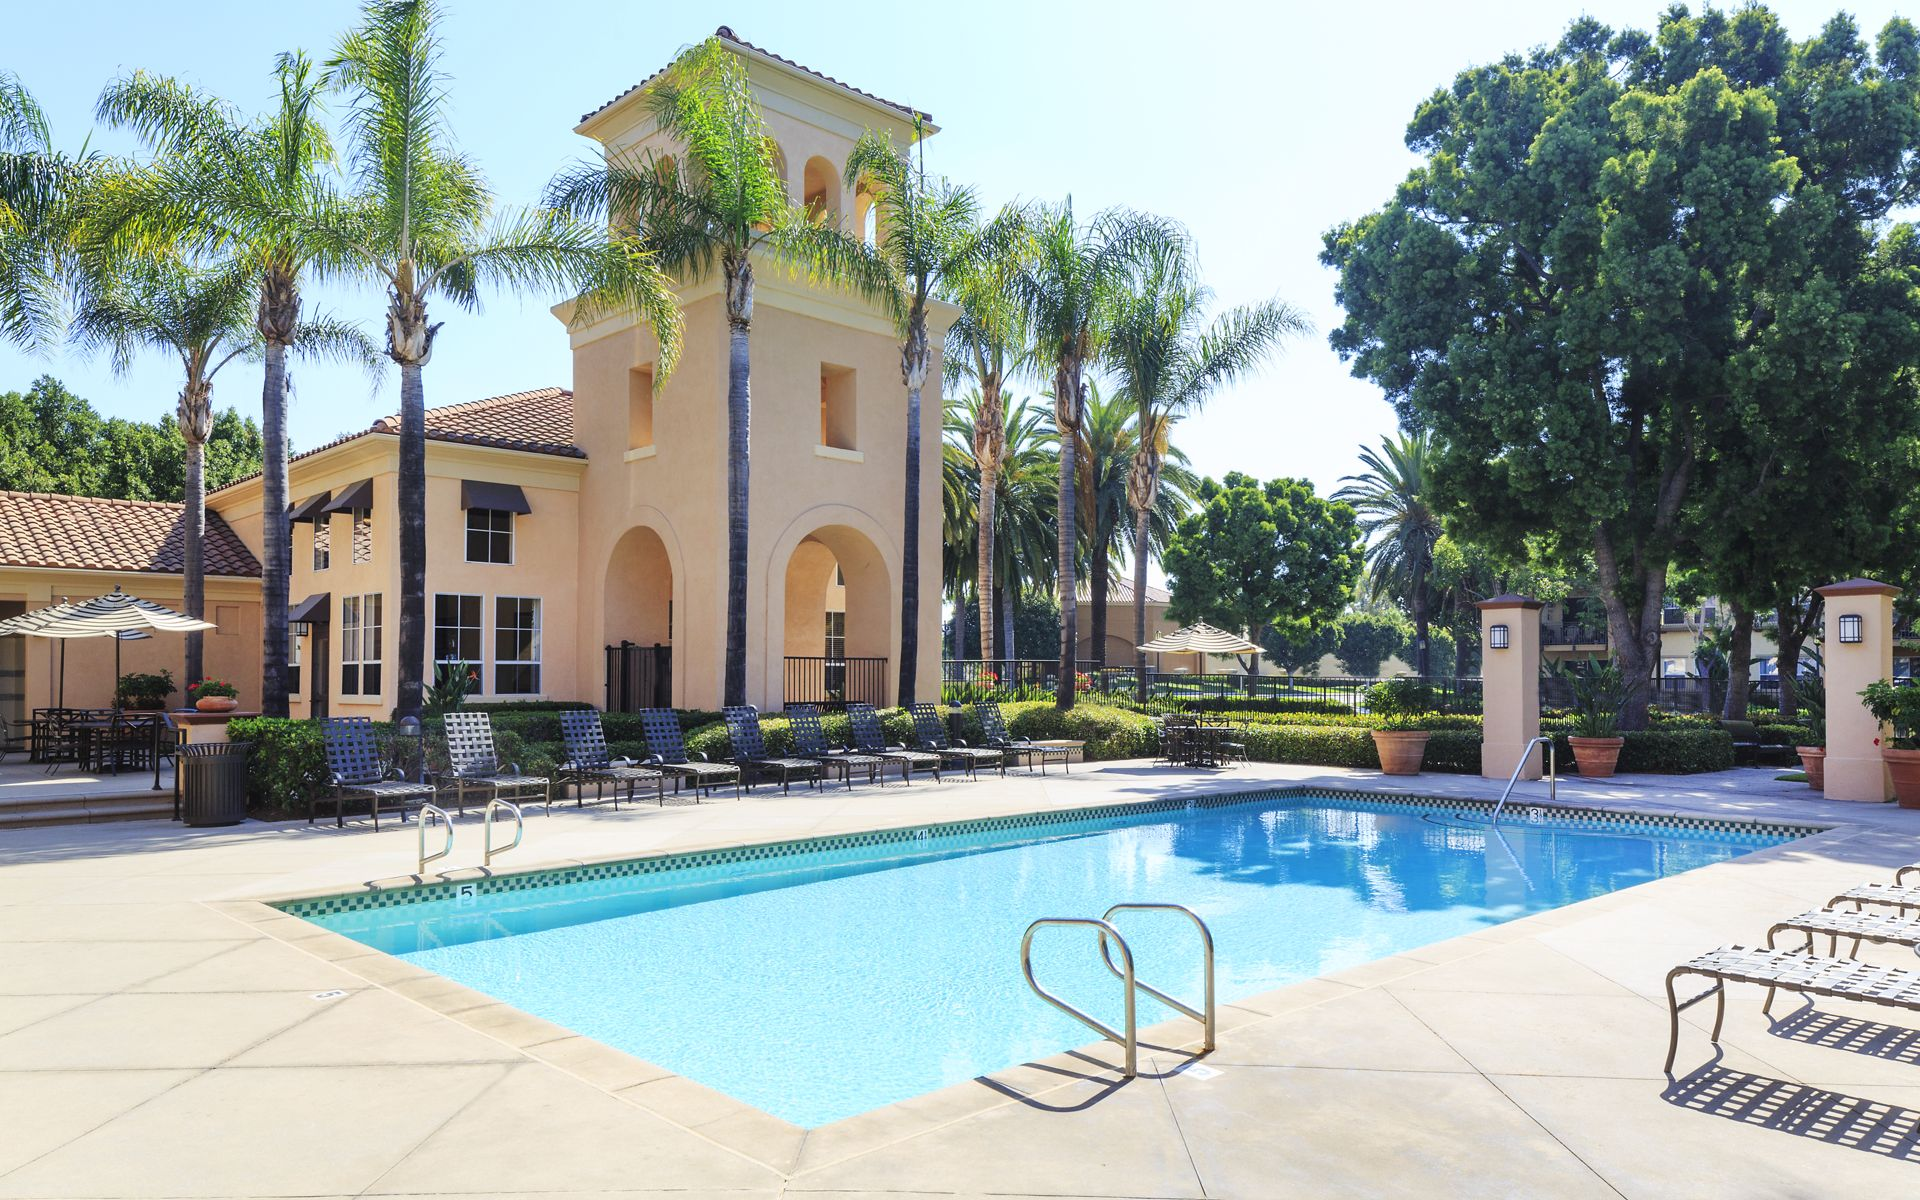 Villa Coronado Apartments in Irvine - 1 - 3 Bedroom & Studios